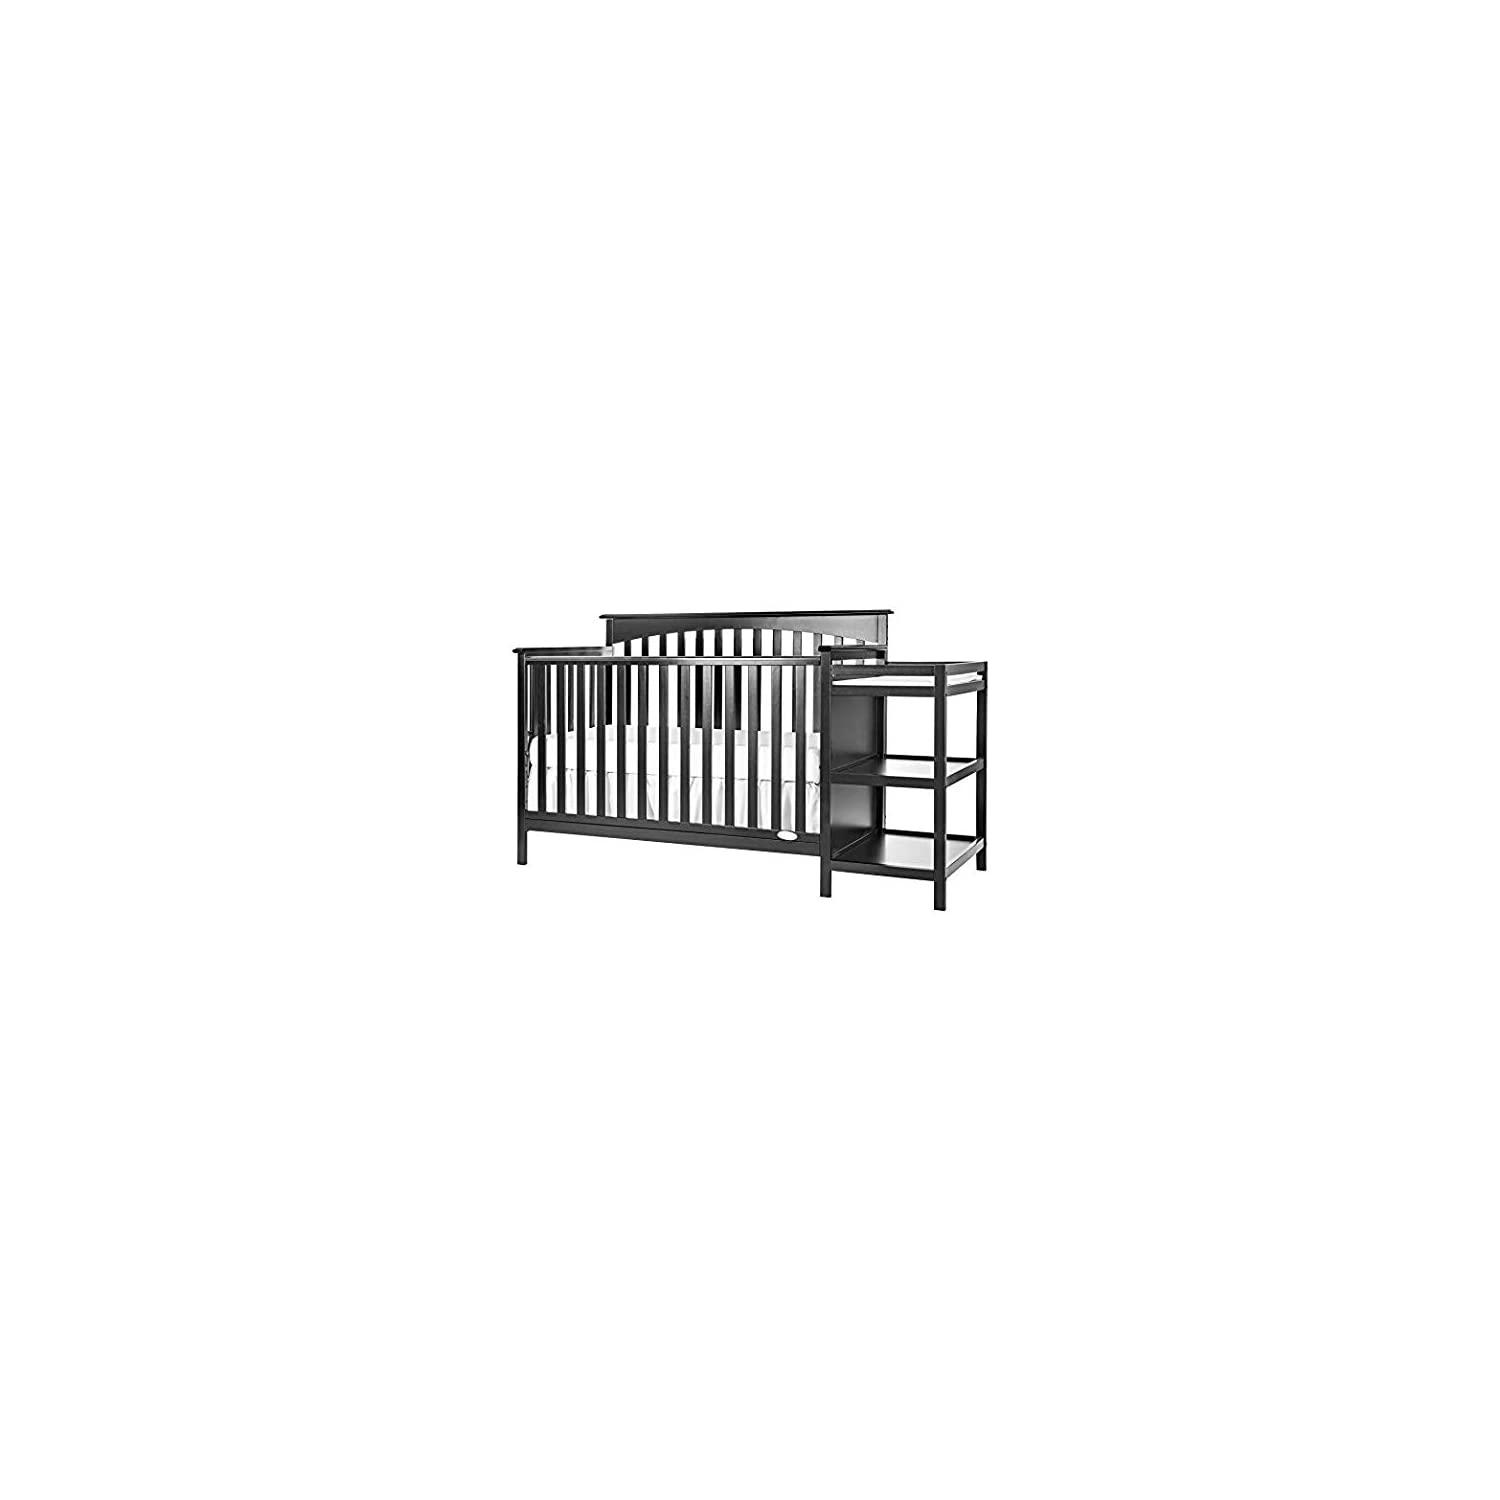 Dream On Me Chloe 5-in-1 Convertible Crib with Changer, Black with Changer, Cherry with Two Sided Contour Changing Pad, White and Full Size Firm Foam Crib and Toddler Bed Mattress, Little Baby, 6″